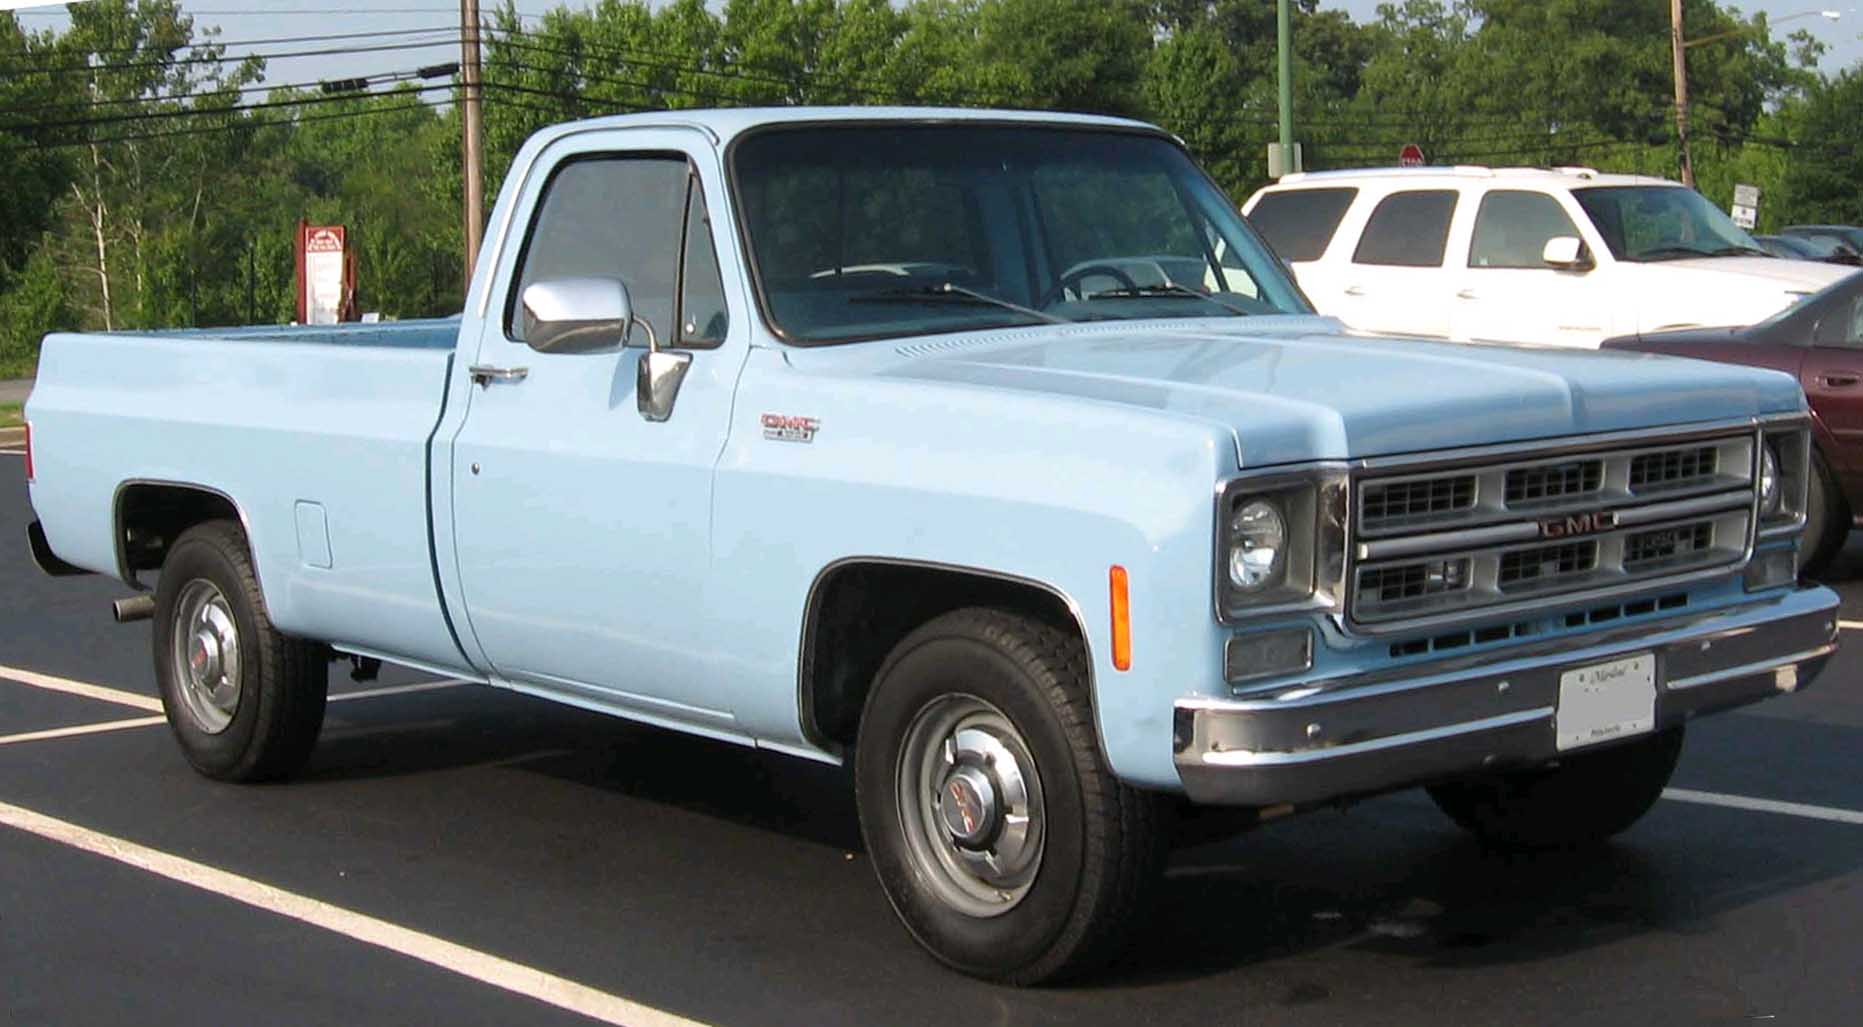 Pickup 74 chevy pickup : Woodall Industries - Chevy & GMC Truck History